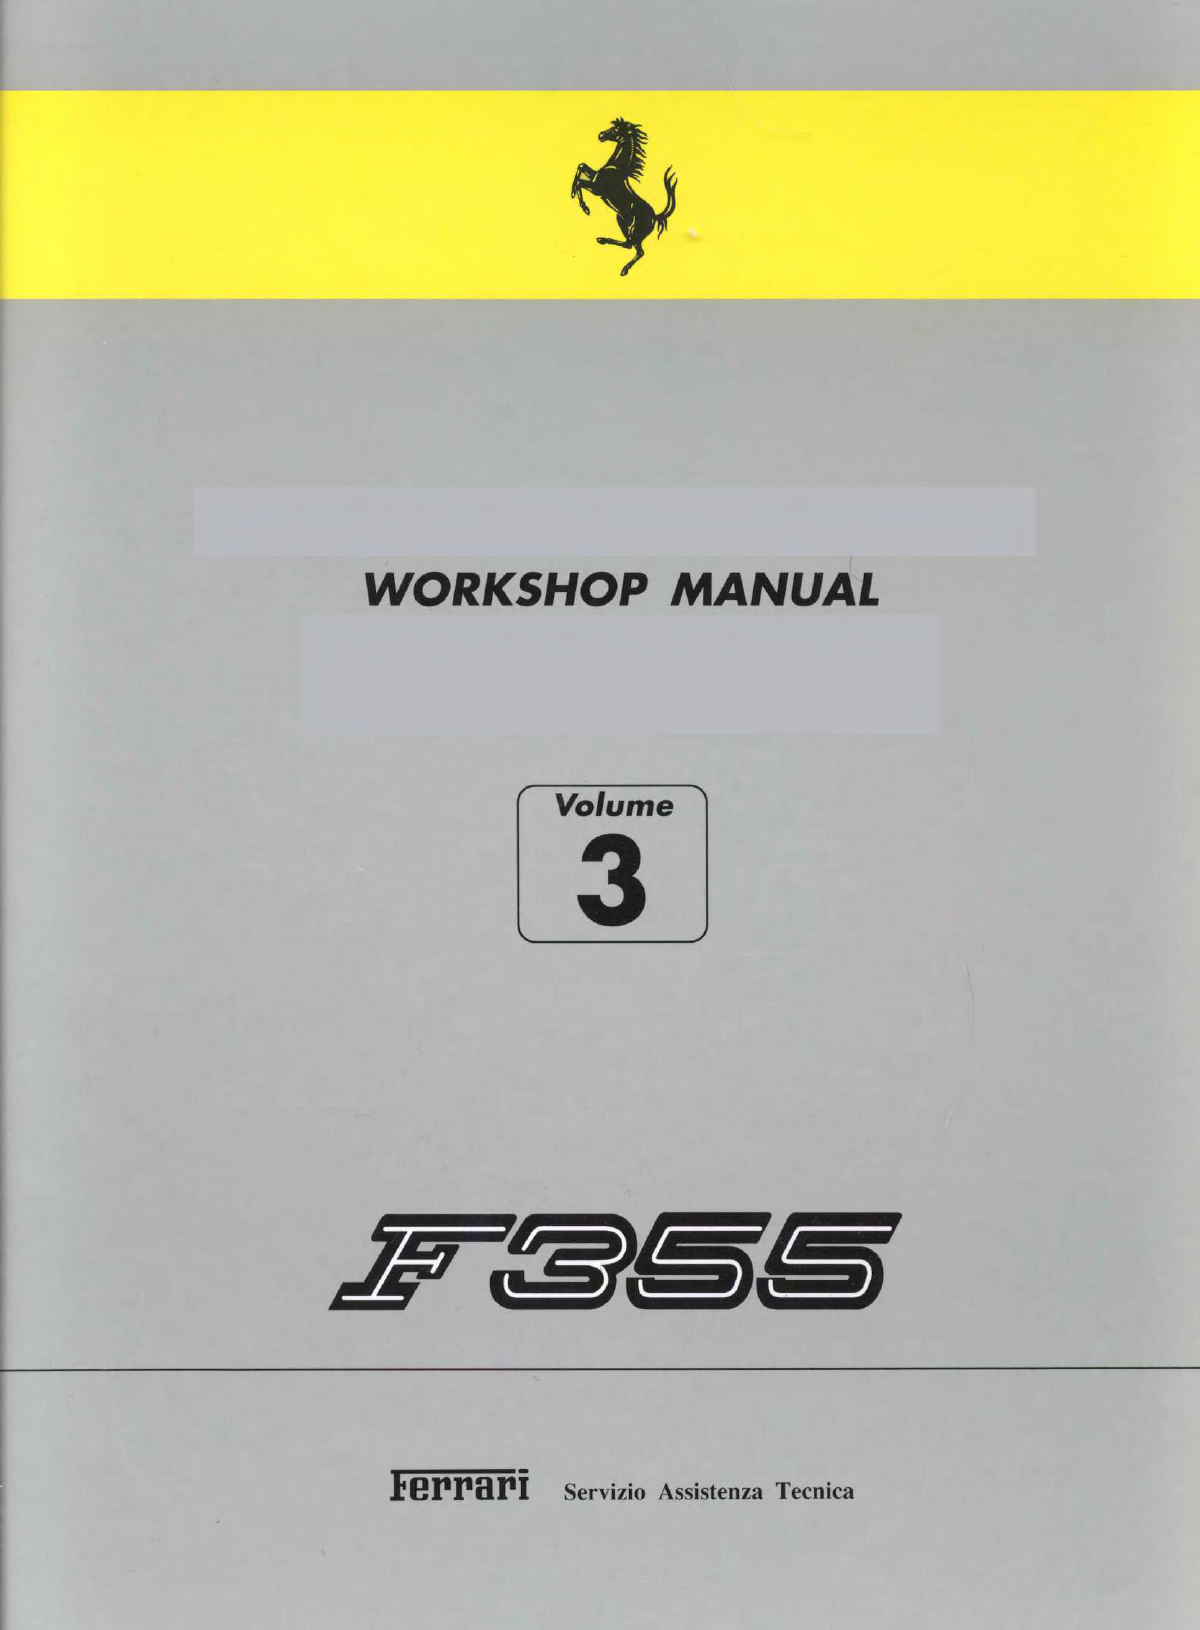 ferrari 355 workshop manual pdf, Wiring diagram